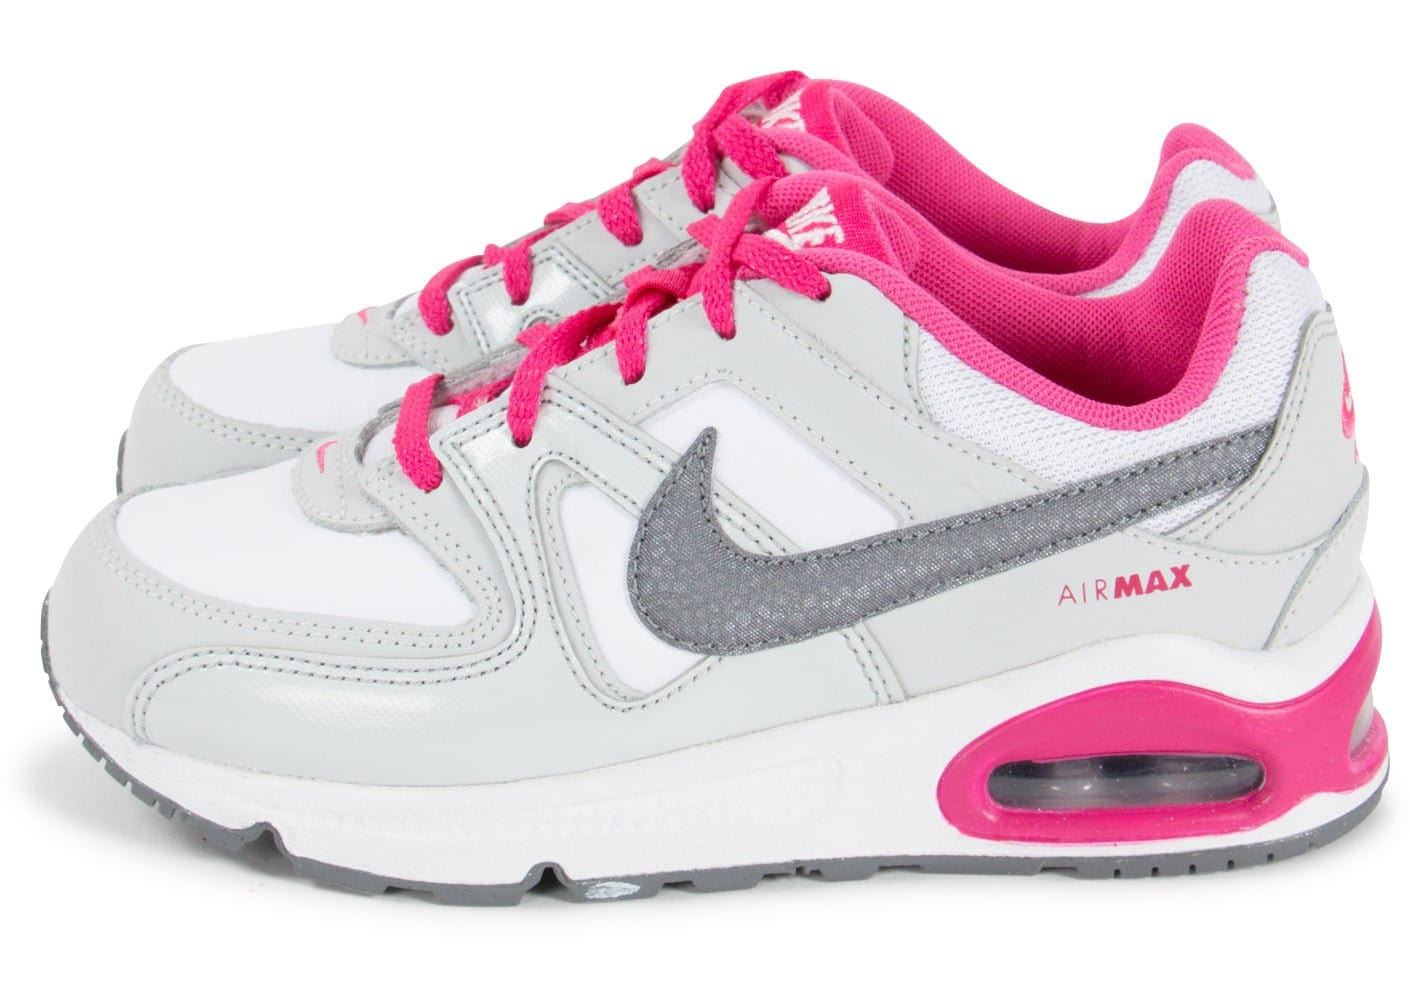 nike air max command enfant argent et fuchsia chaussures chaussures chausport. Black Bedroom Furniture Sets. Home Design Ideas